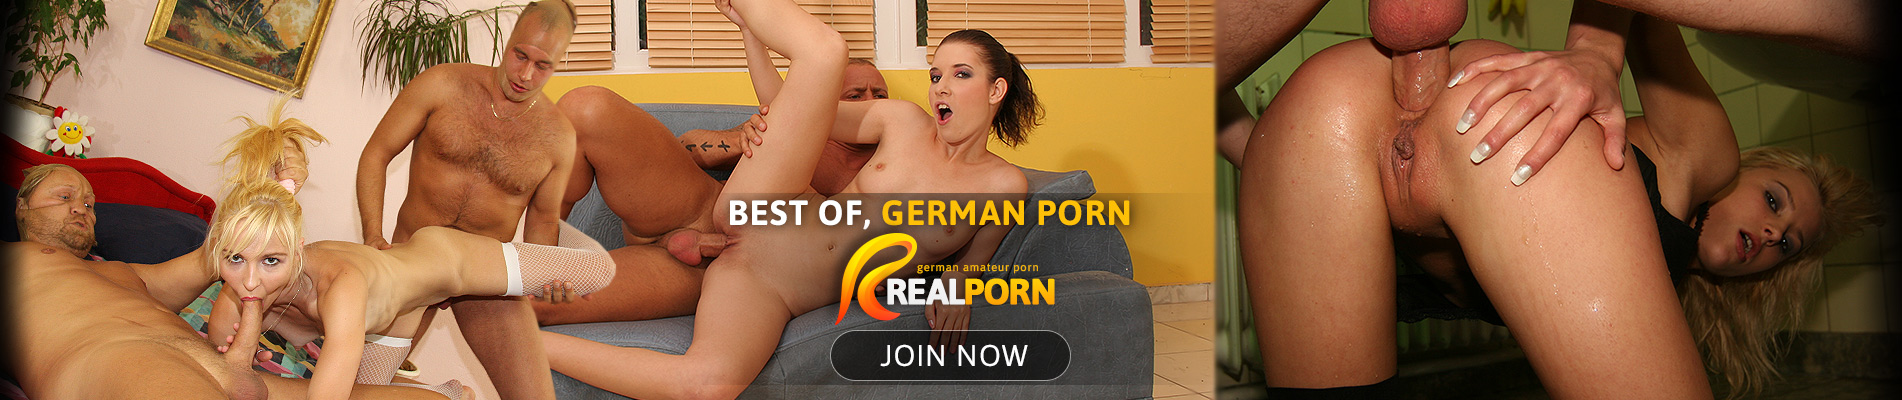 German girls gets fucking and enjoys orgies